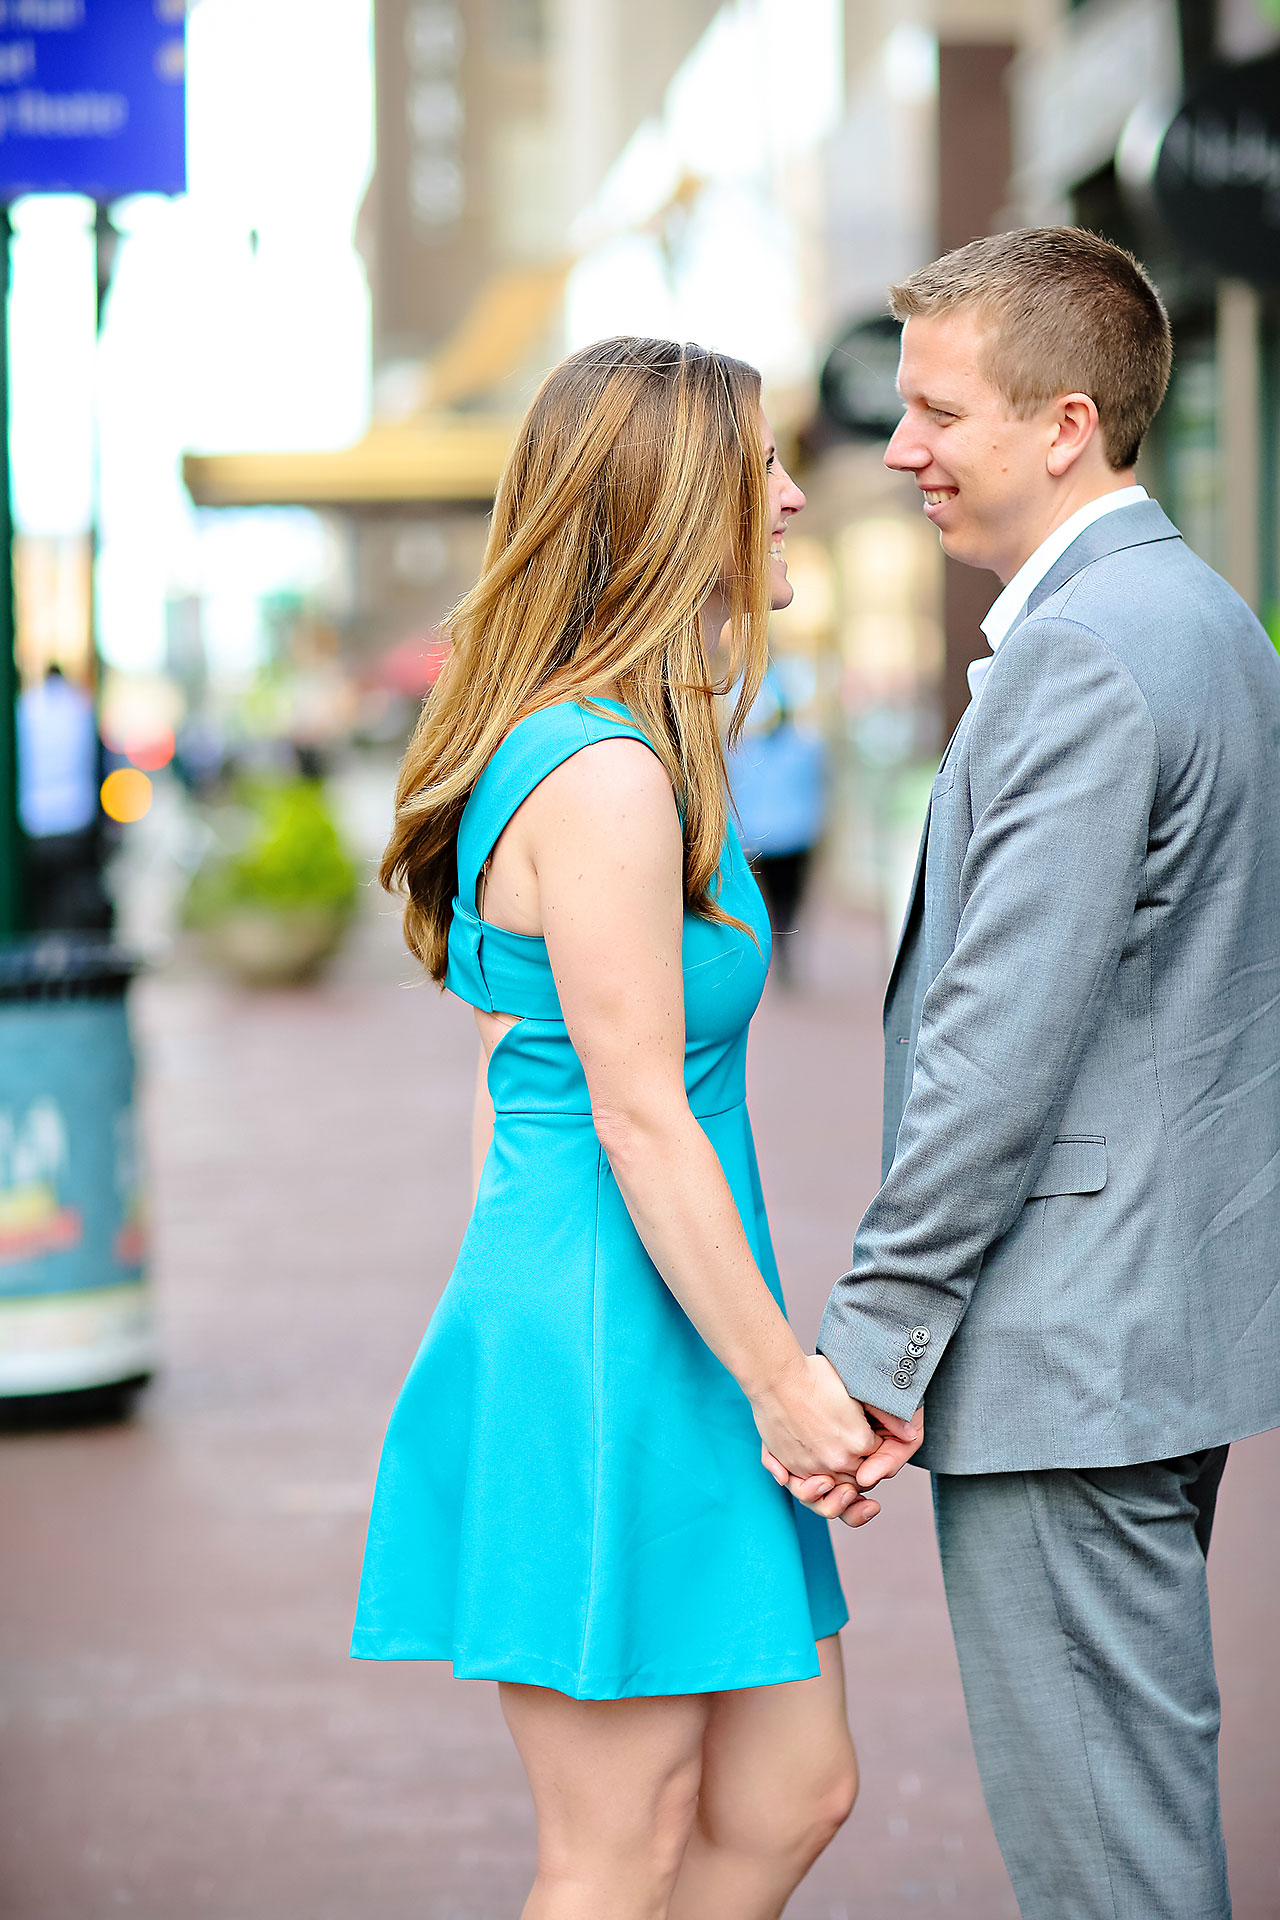 Chelsea Jeff Downtown Indy Engagement Session 112